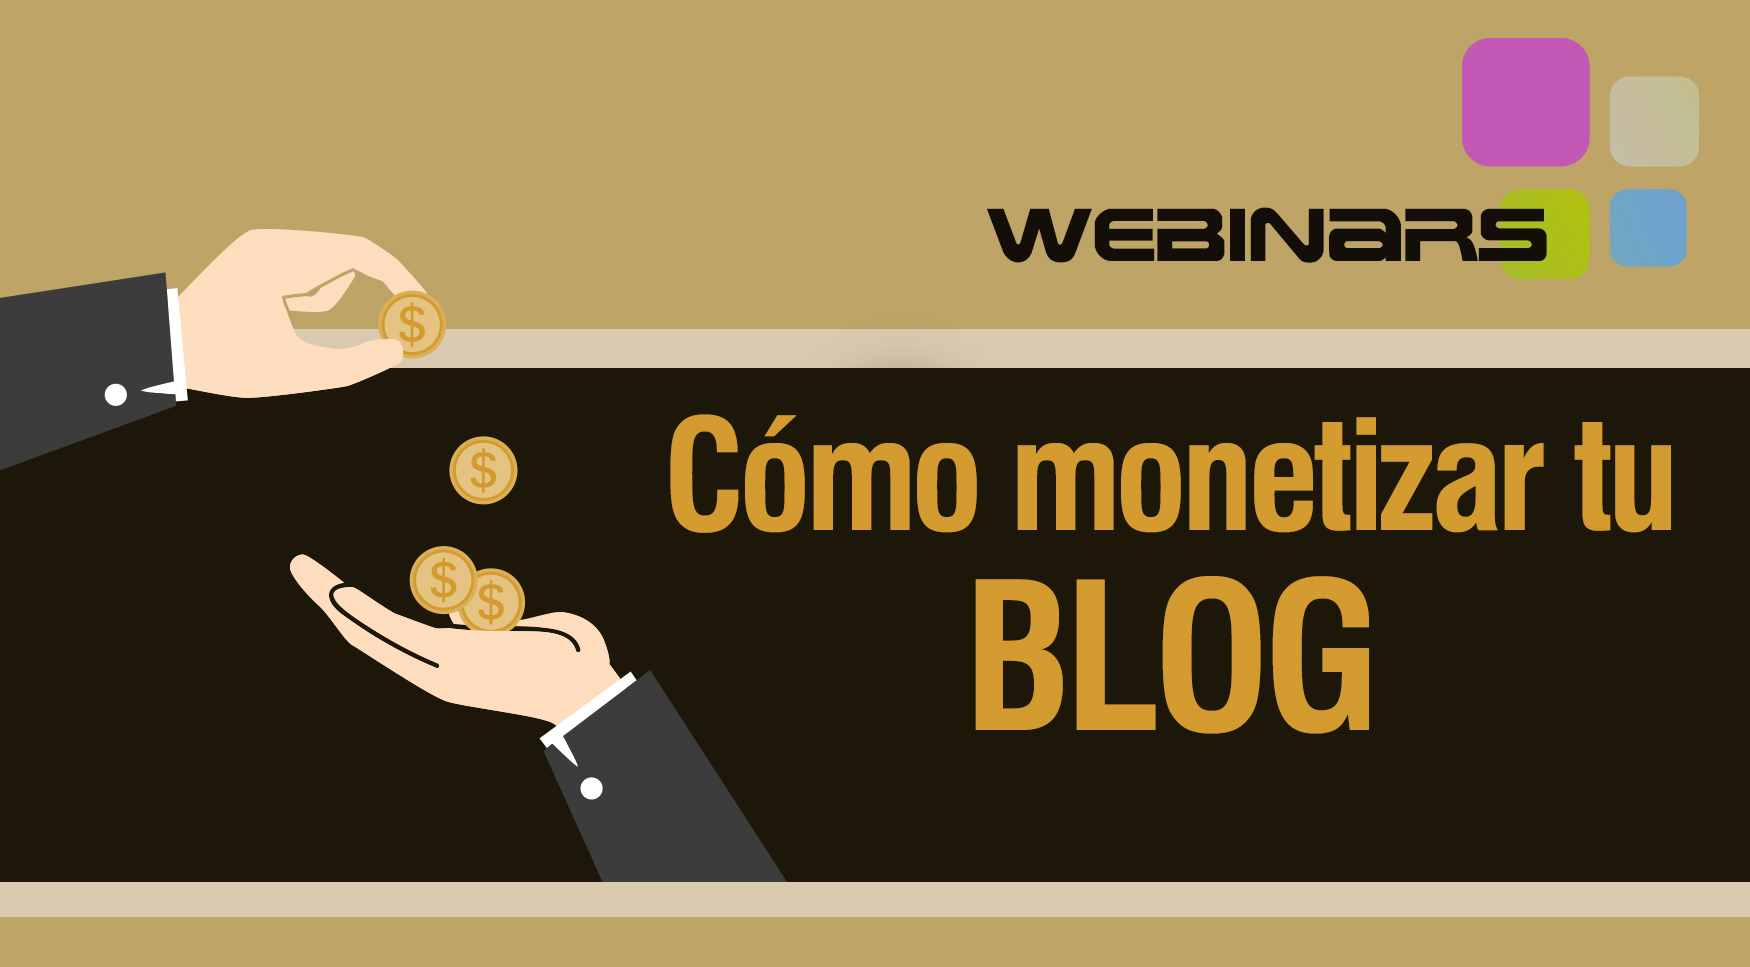 Como monetizar tu blog